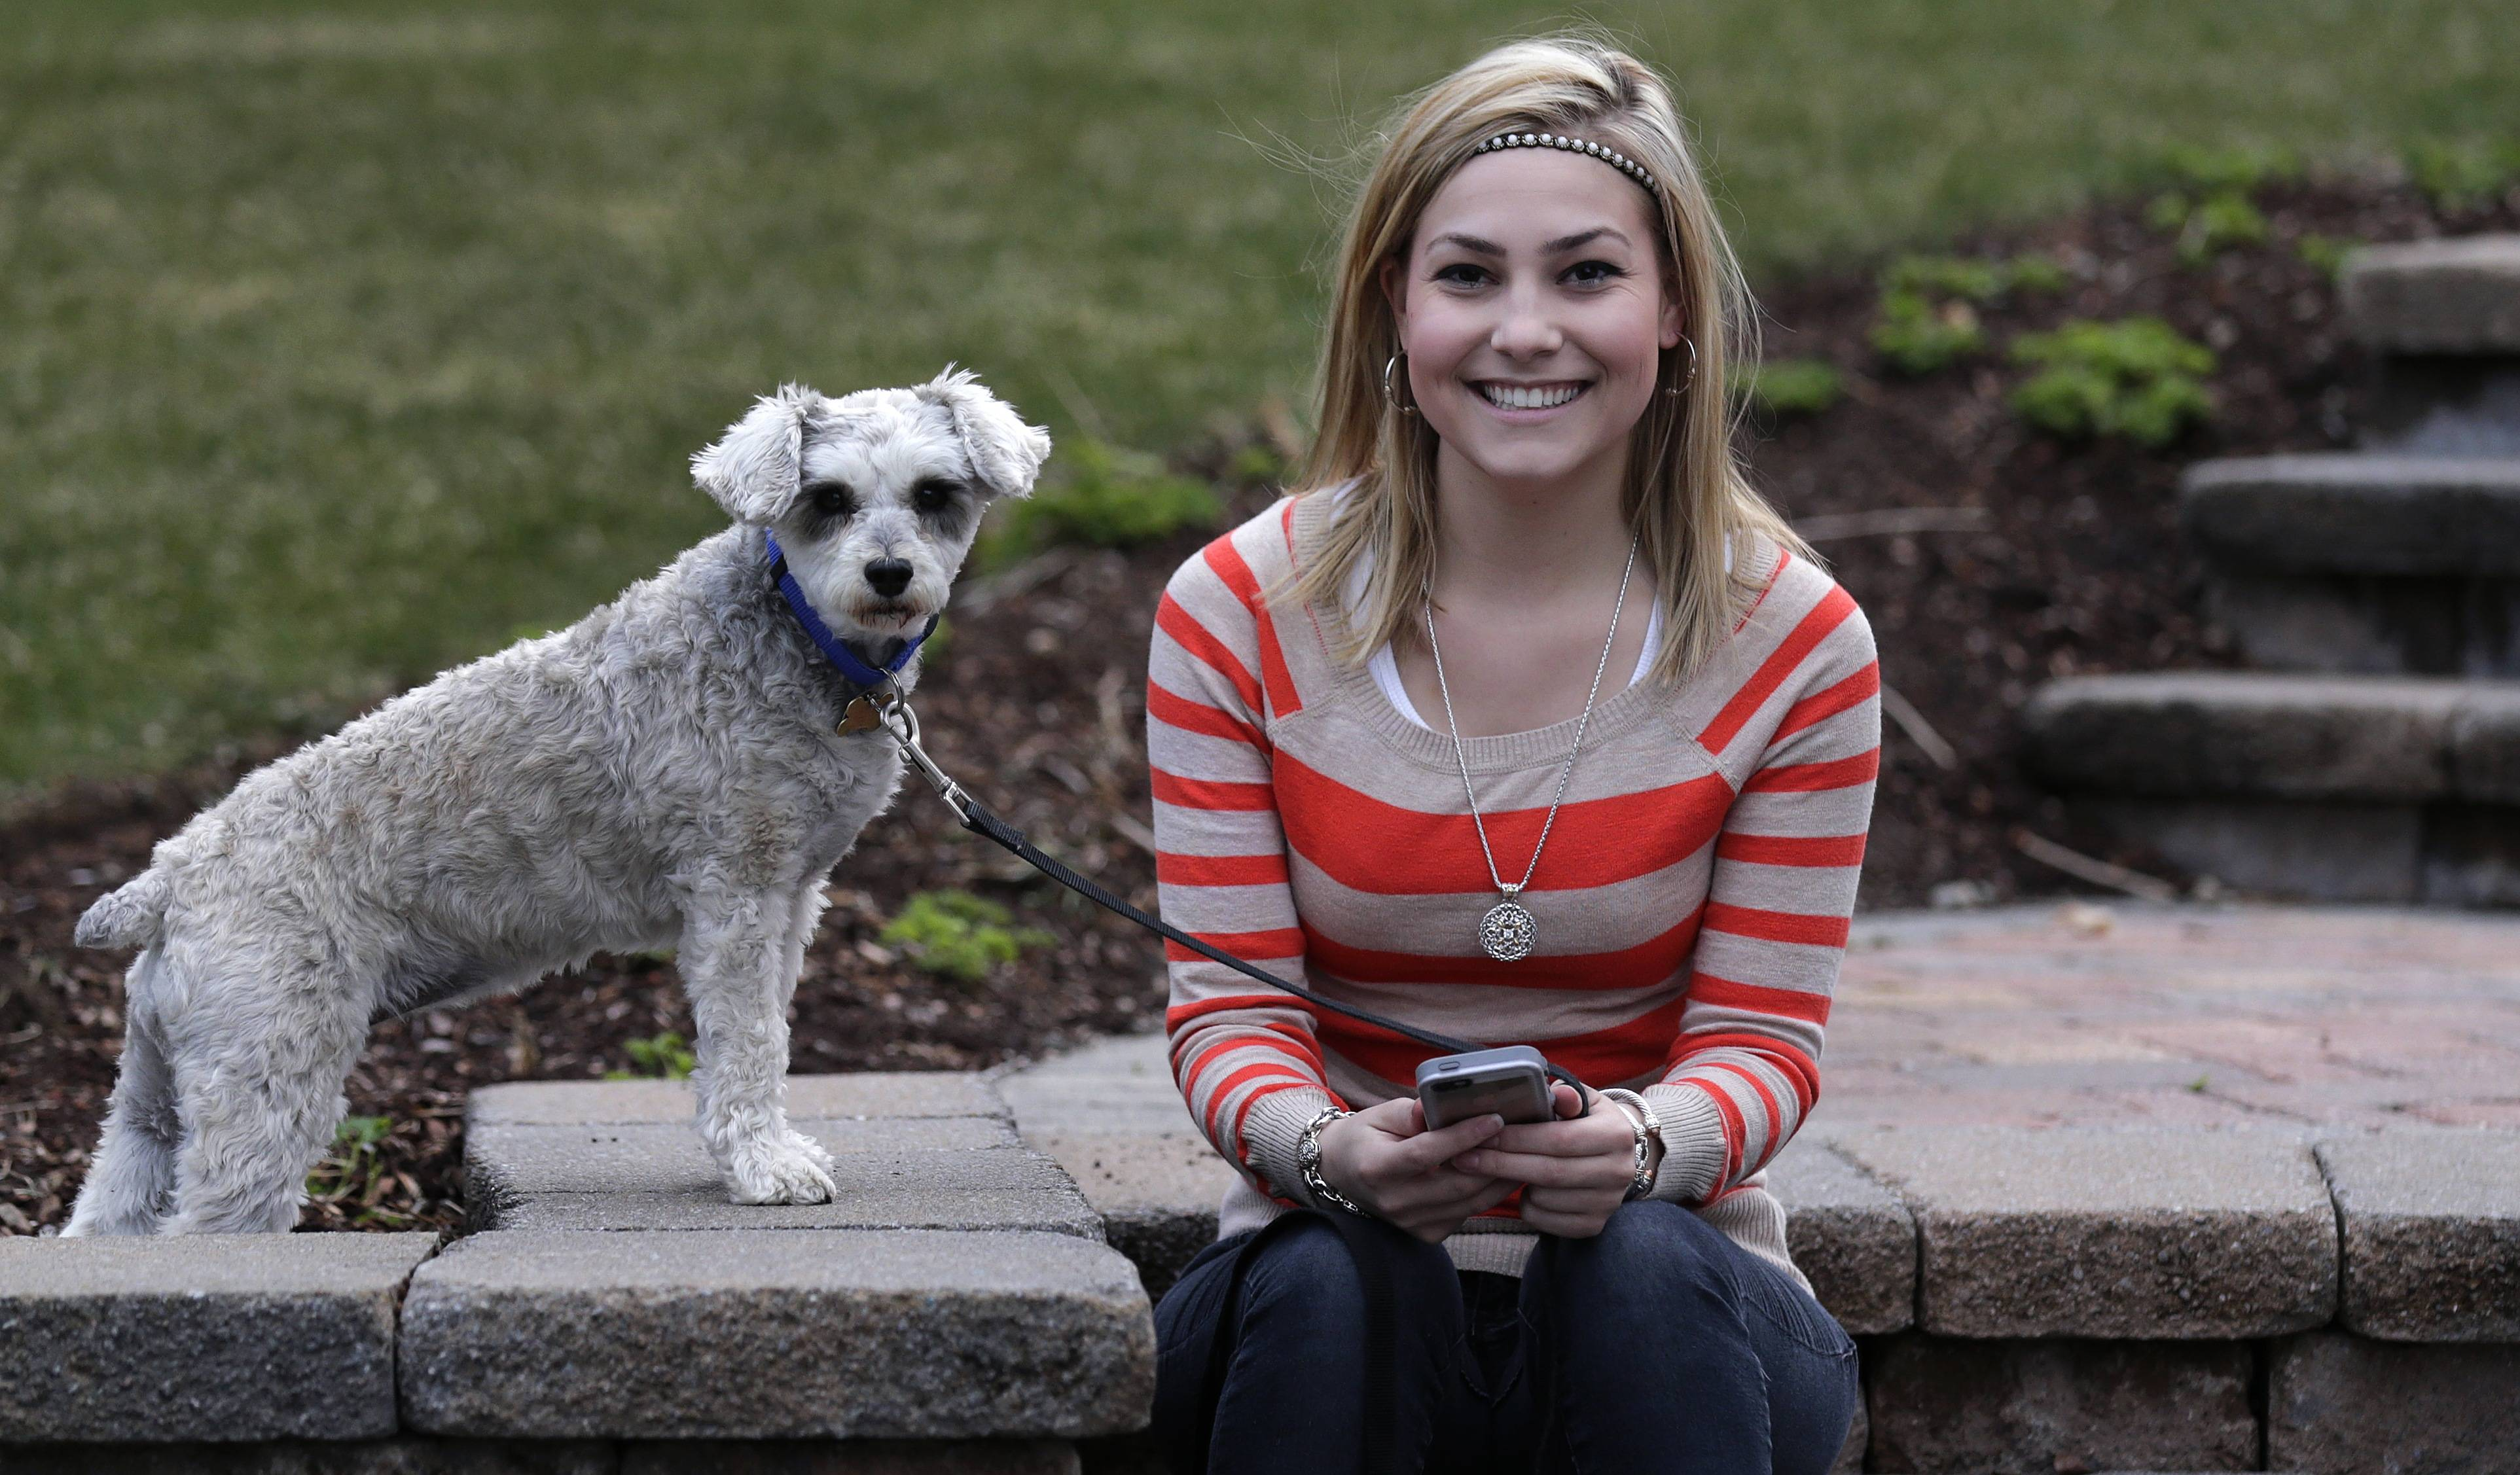 Associated Press In this April 23, 2014 photo, Melissa Ellard with her dog, Nike, in Foxborough, Mass. Ellard says she wouldn't have gone on a date in the past six months were it not for Hinge, a dating app whose promise hinges on its ability to hook you up with friends of friends.